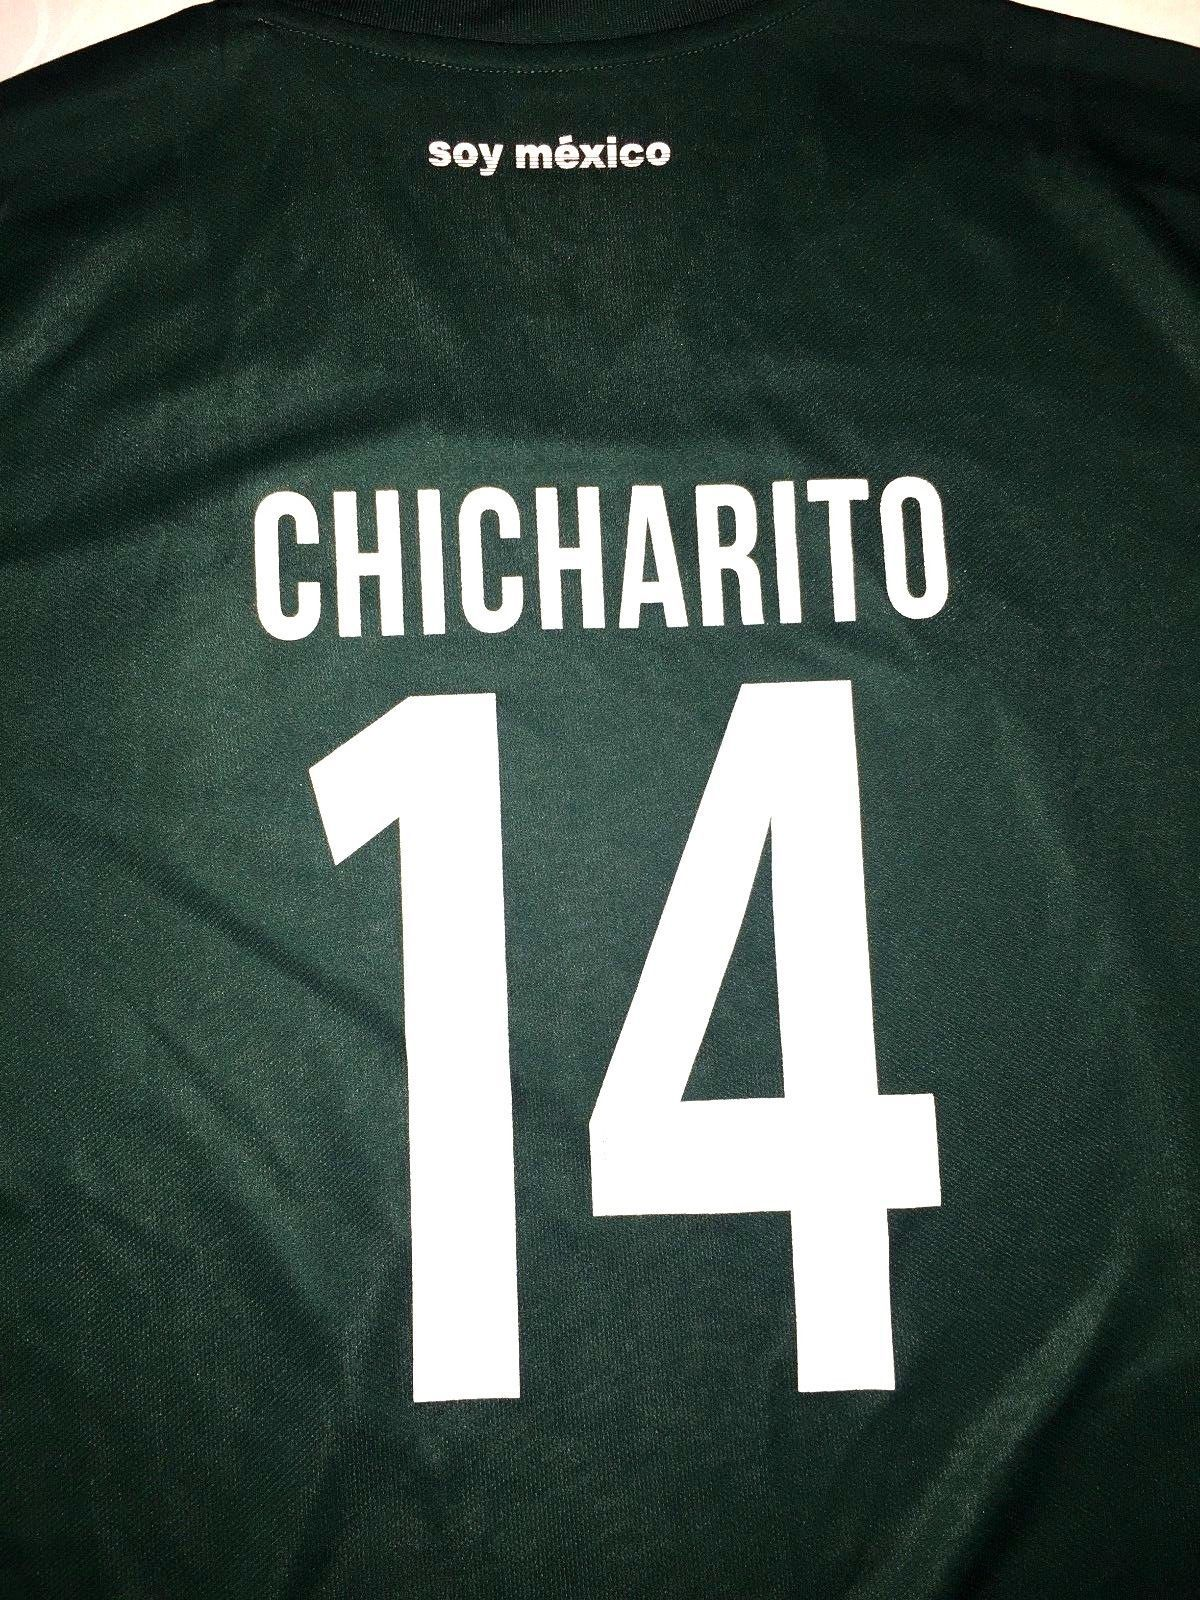 4b1f3ad8019 NEW 2018 ADIDAS MEXICO SOCCER FIFA WORLD CUP   14 CHICHARITO MEN S LARGE  JERSEY (eBay Link)